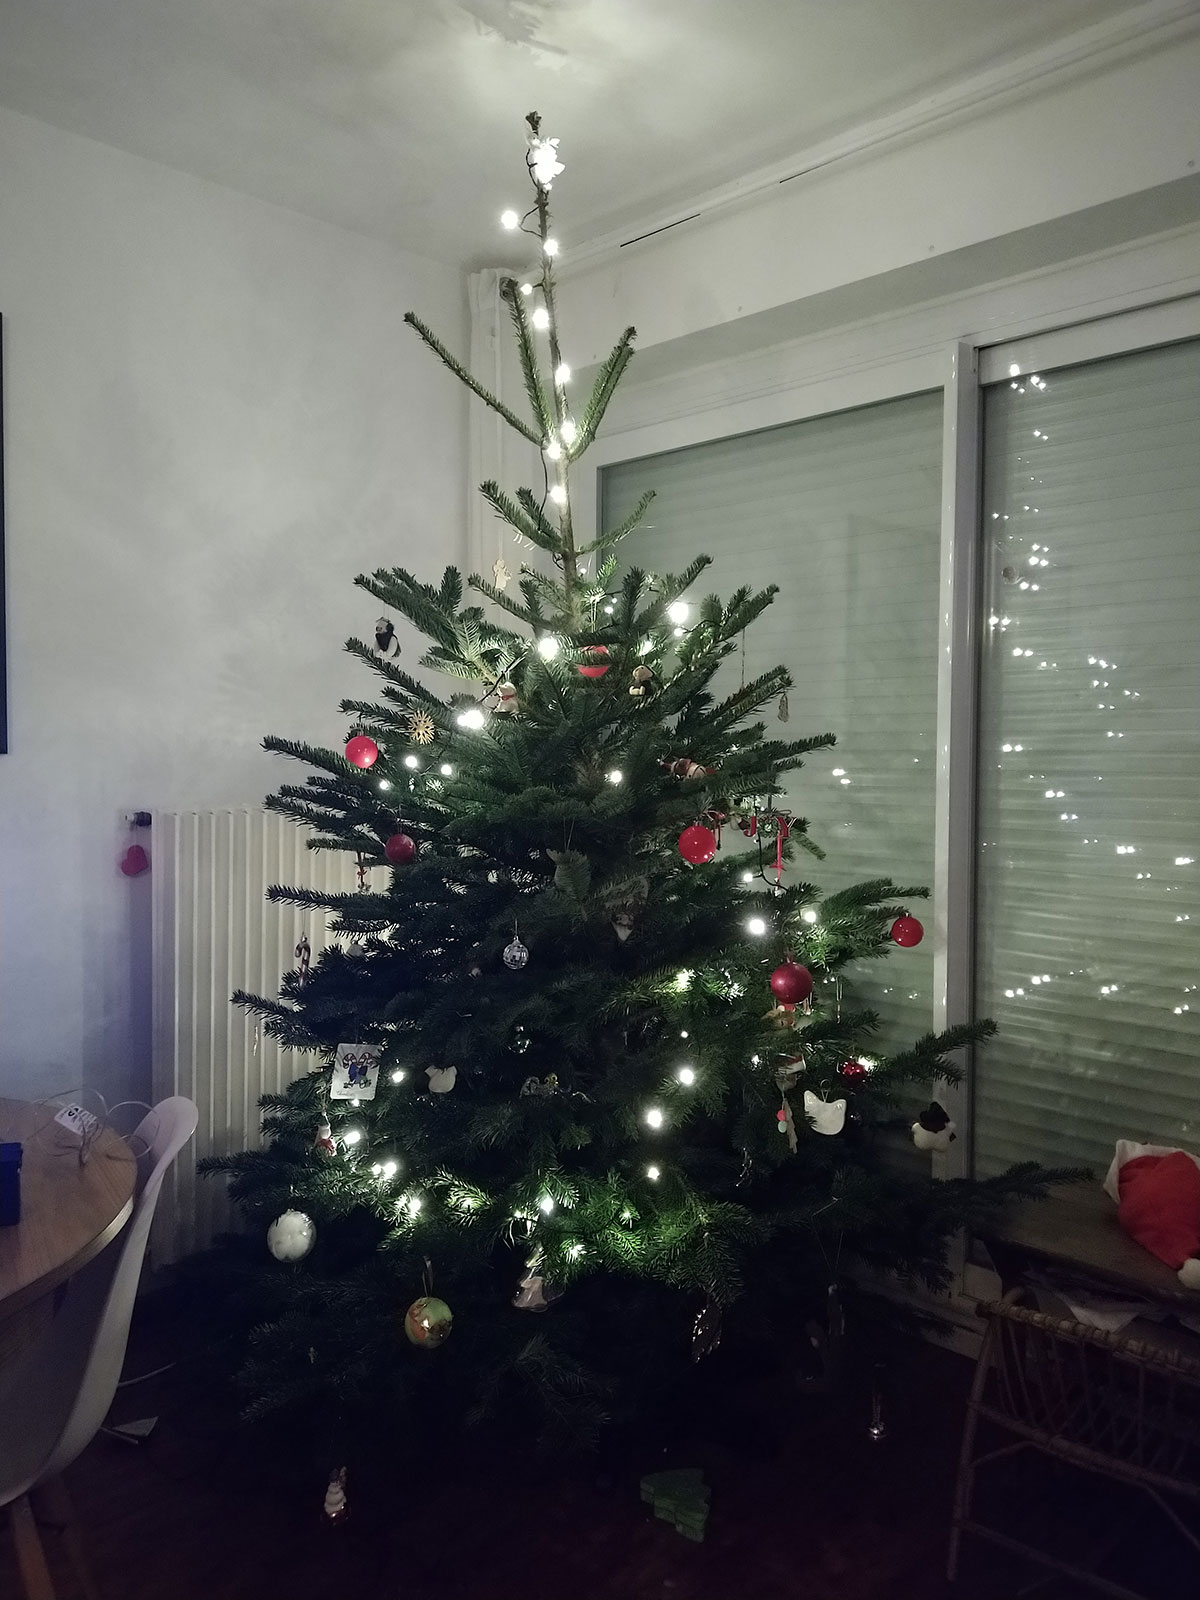 The Cheapest Christmas Tree in Nantes?